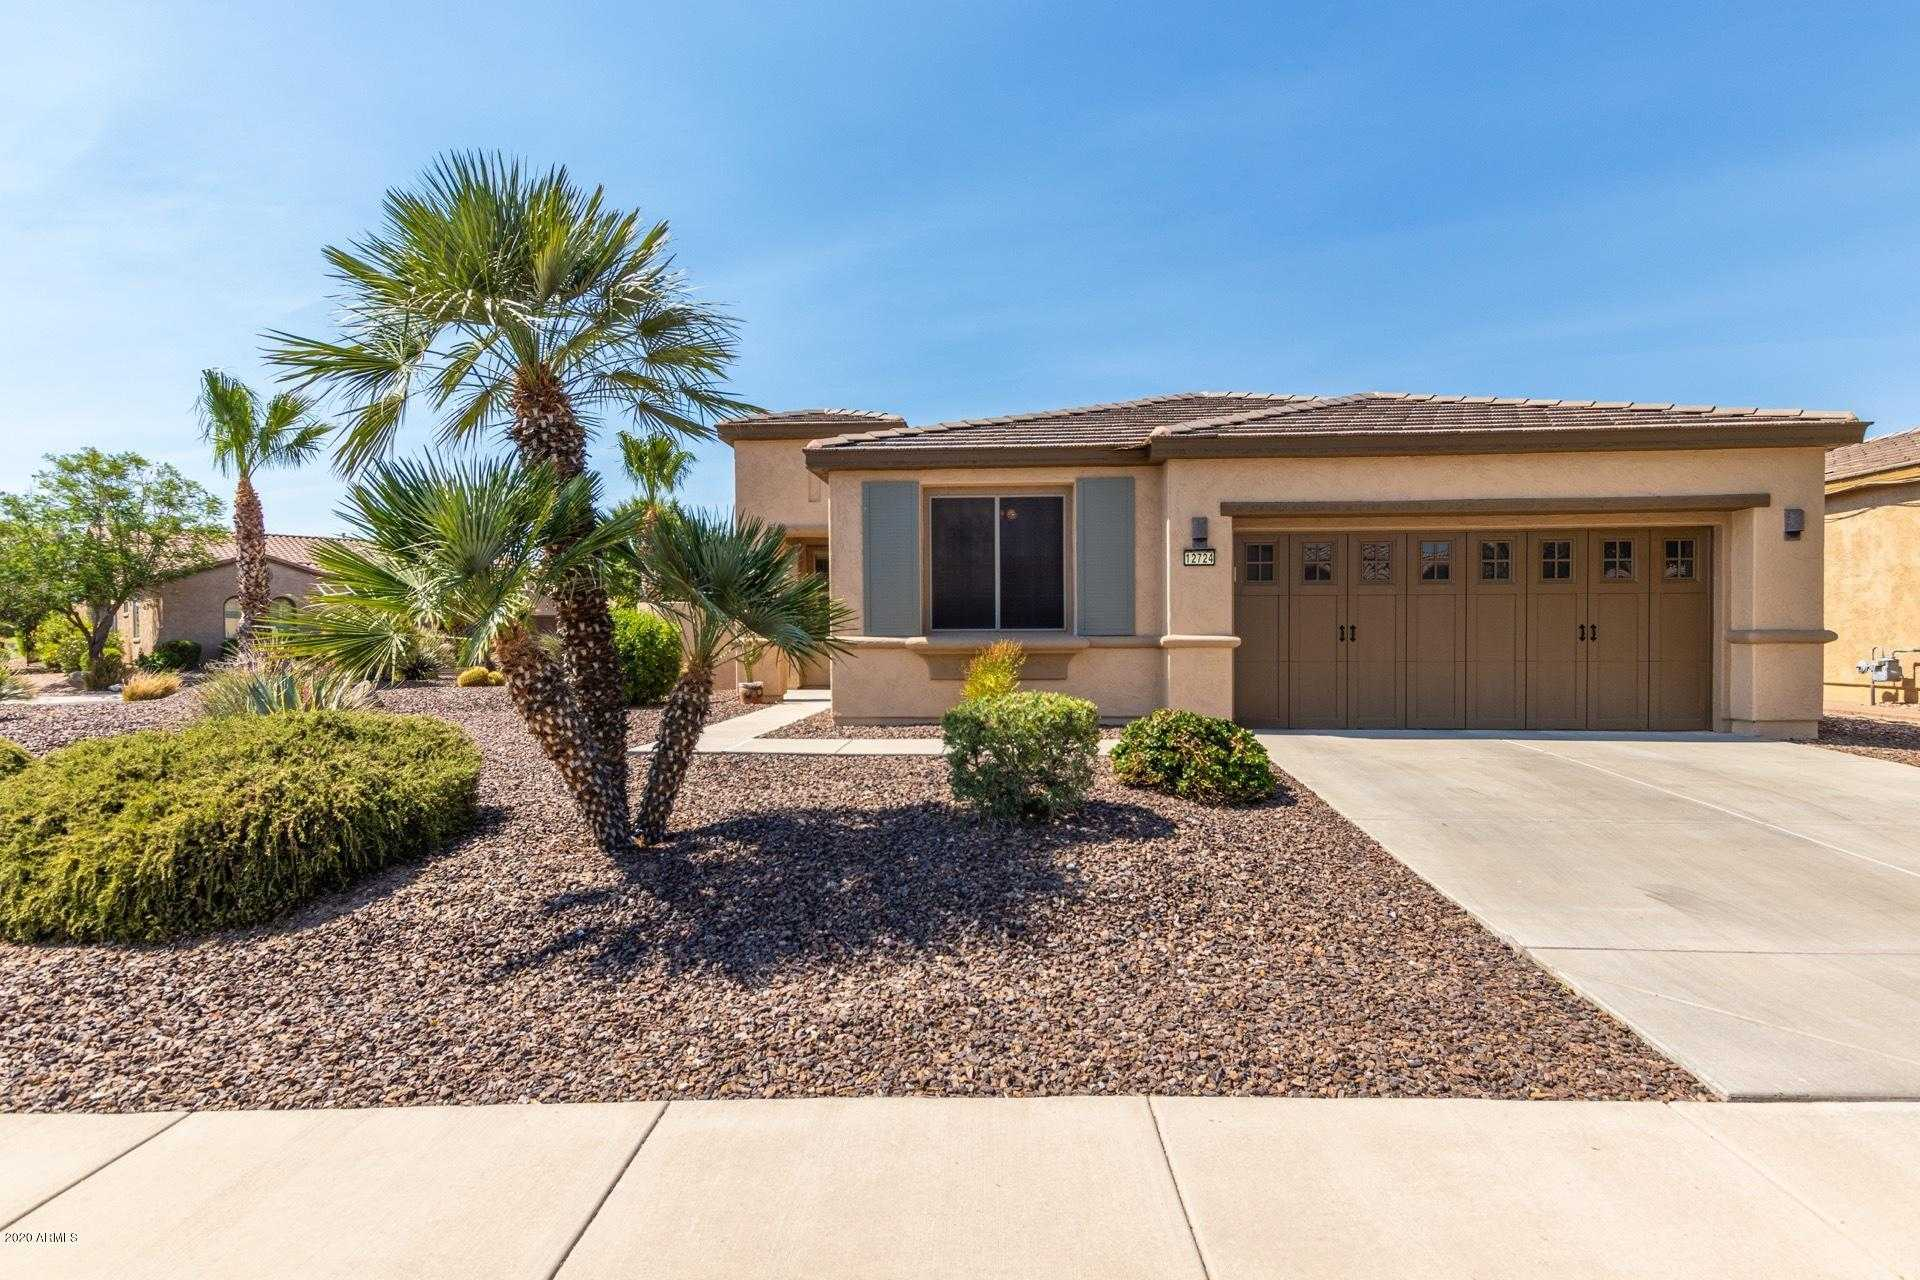 $392,000 - 2Br/2Ba - Home for Sale in Trilogy At Vistancia Parcel C30 Phase 2, Peoria